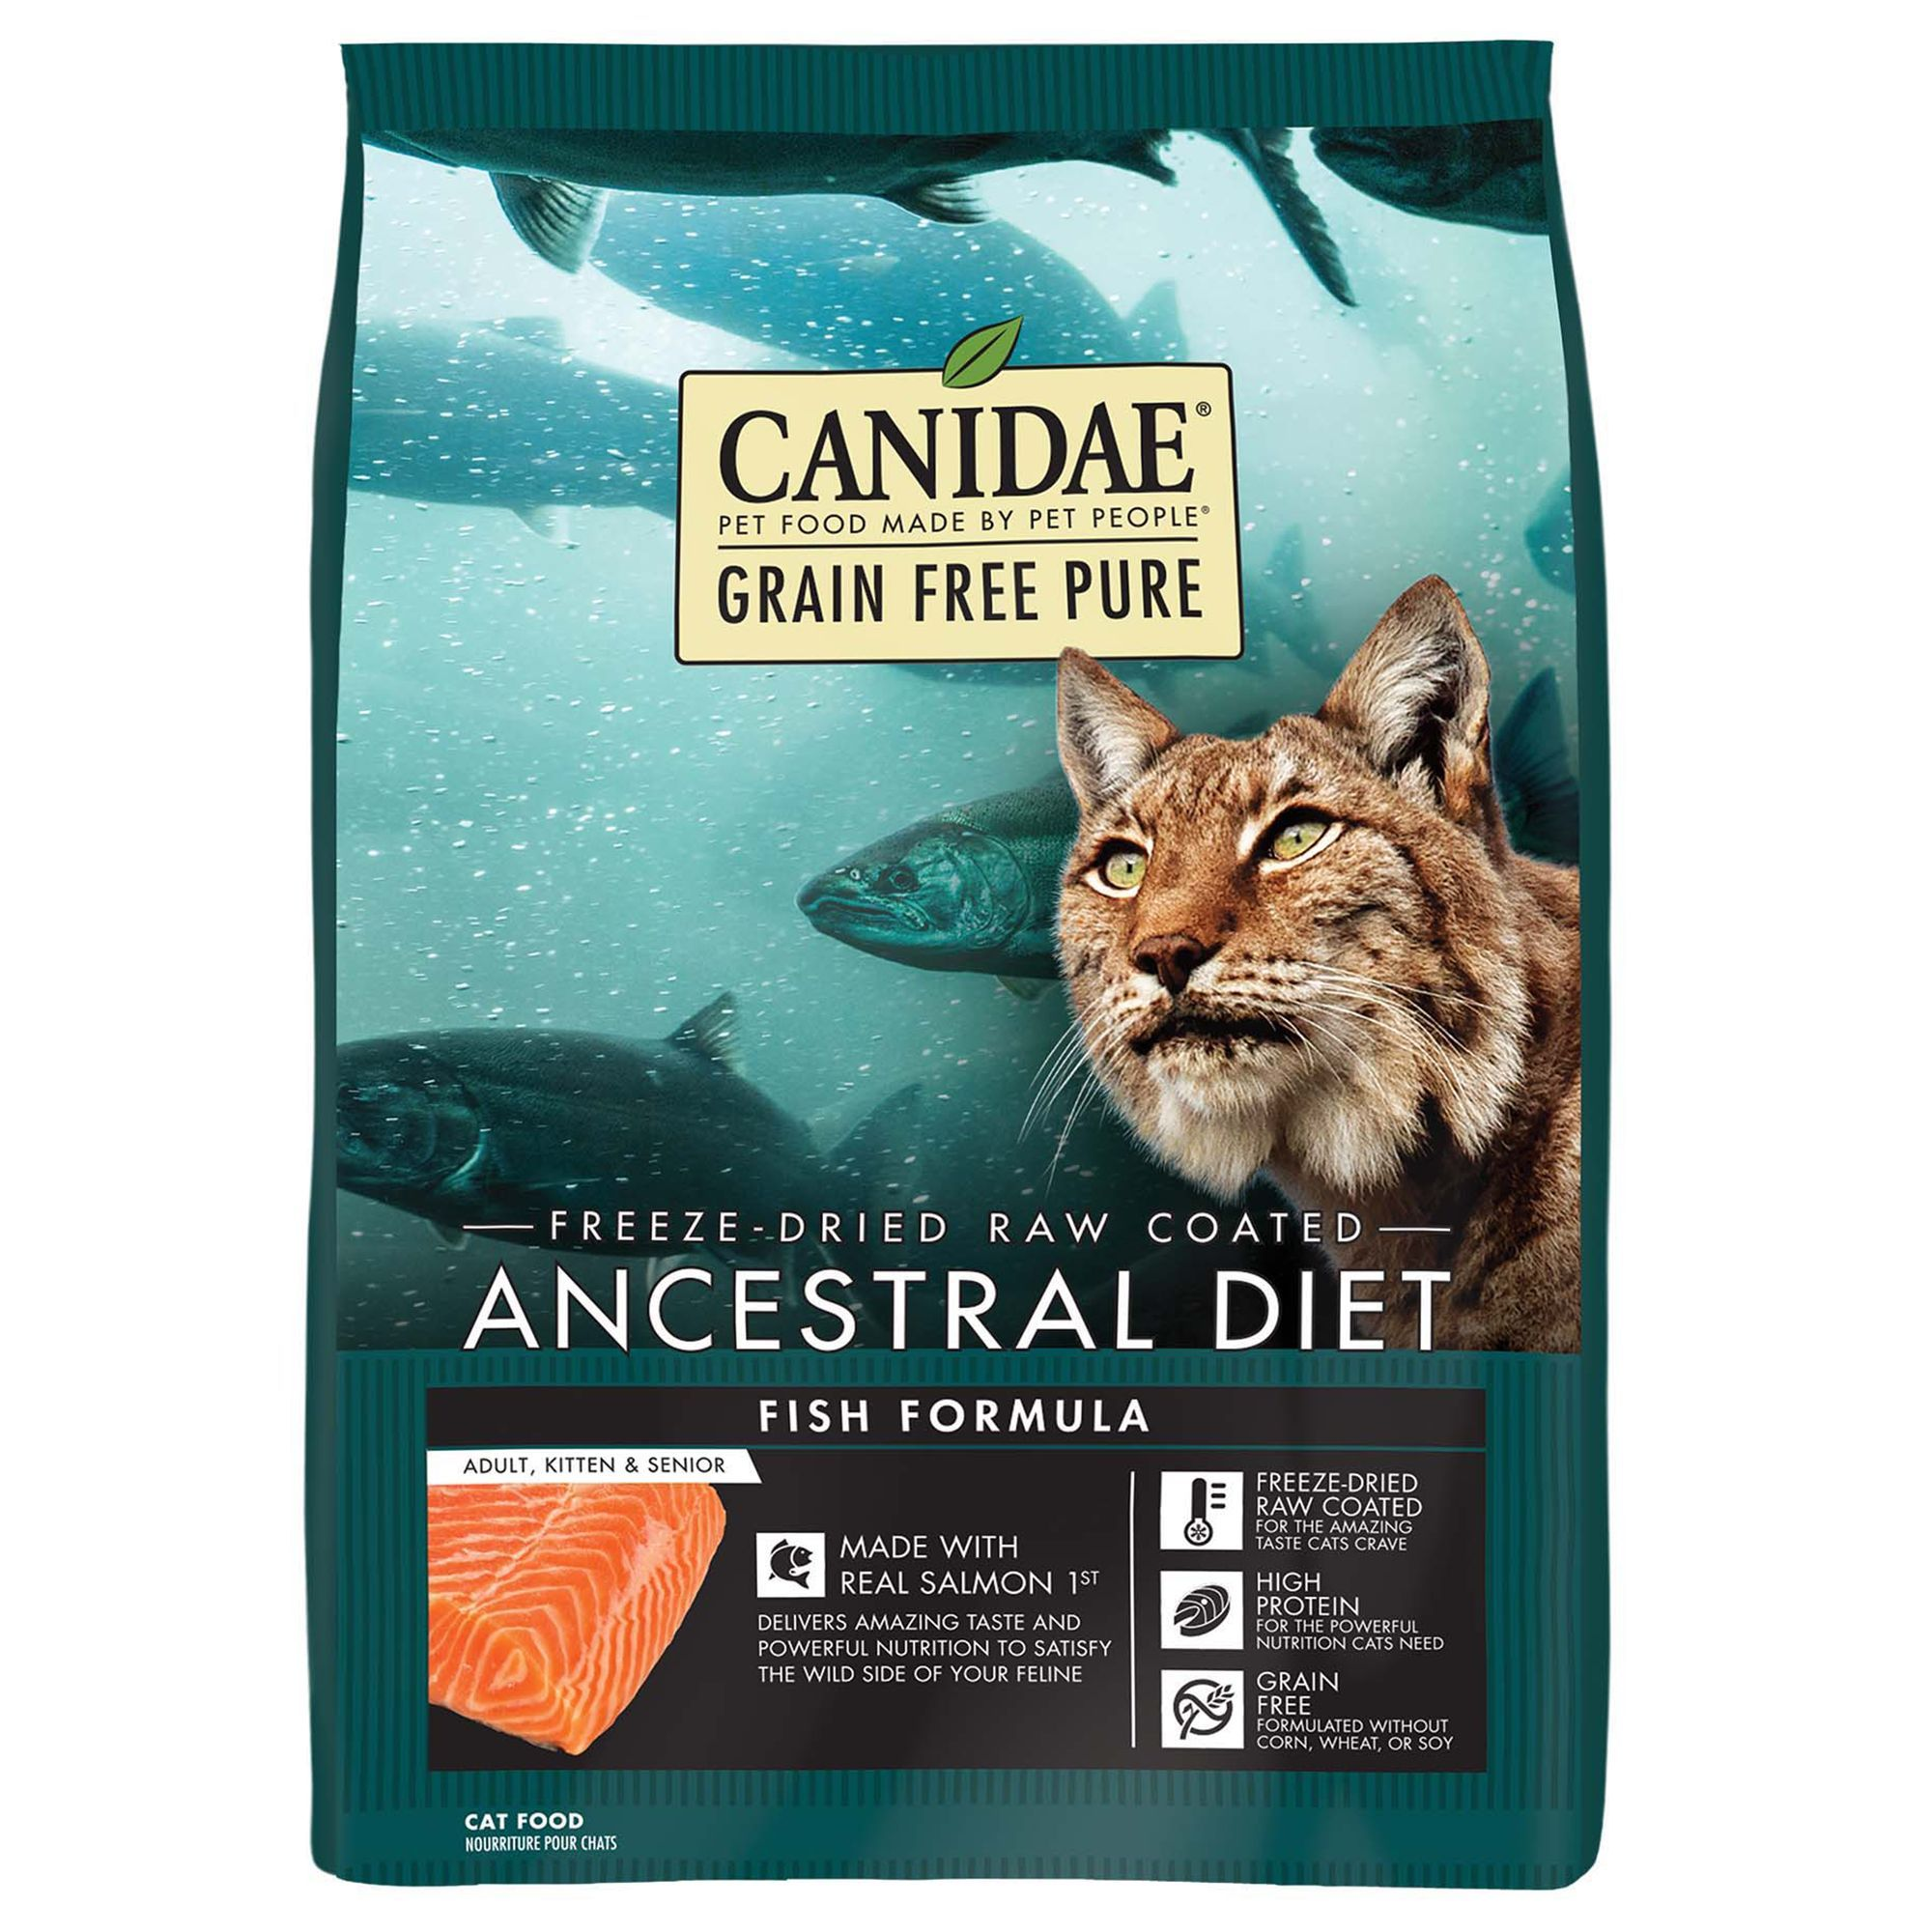 CANIDAE® Ancestrial Diet Indoor Cat Food Raw, Freeze